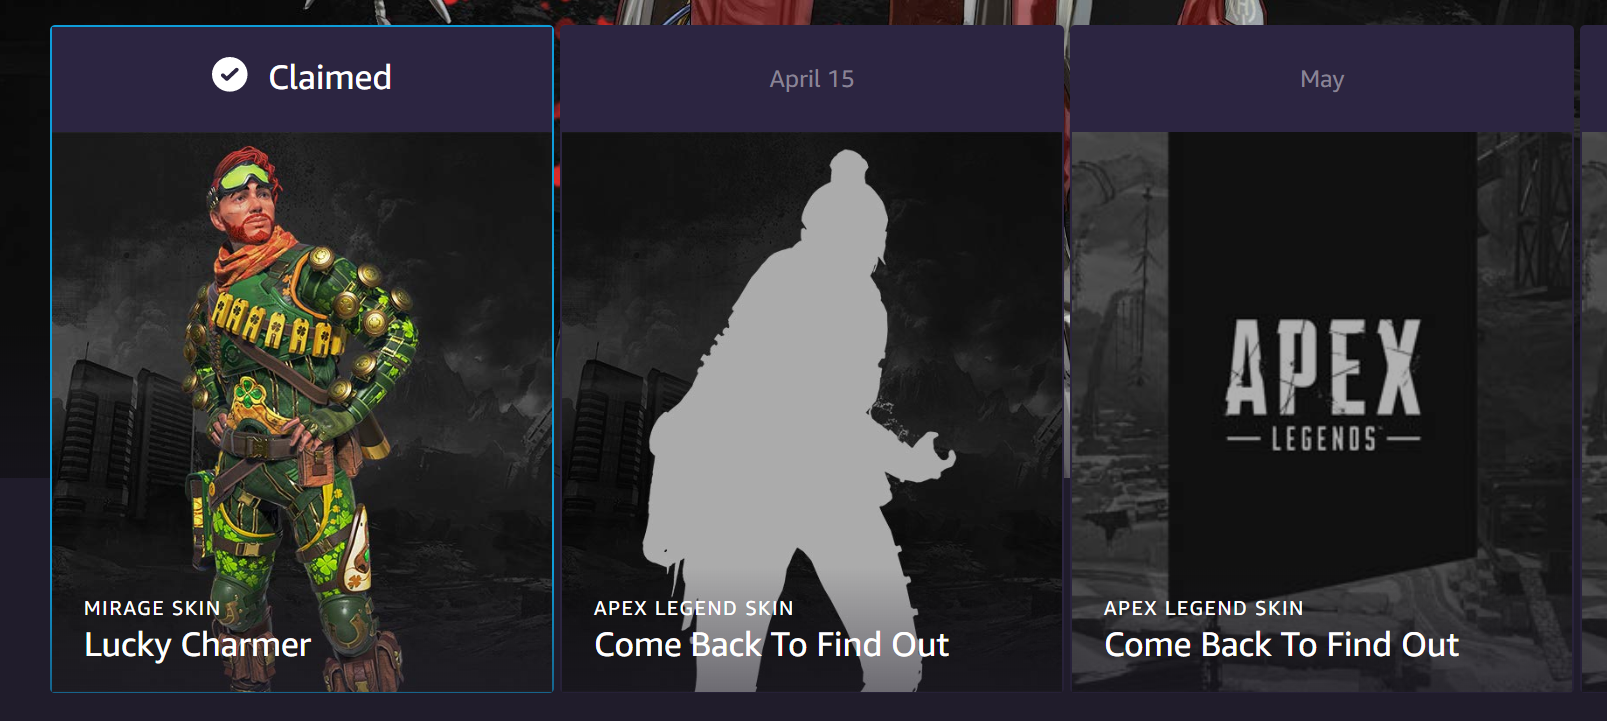 Wraith's Twitch Prime skin has been locked in for an April 15 release